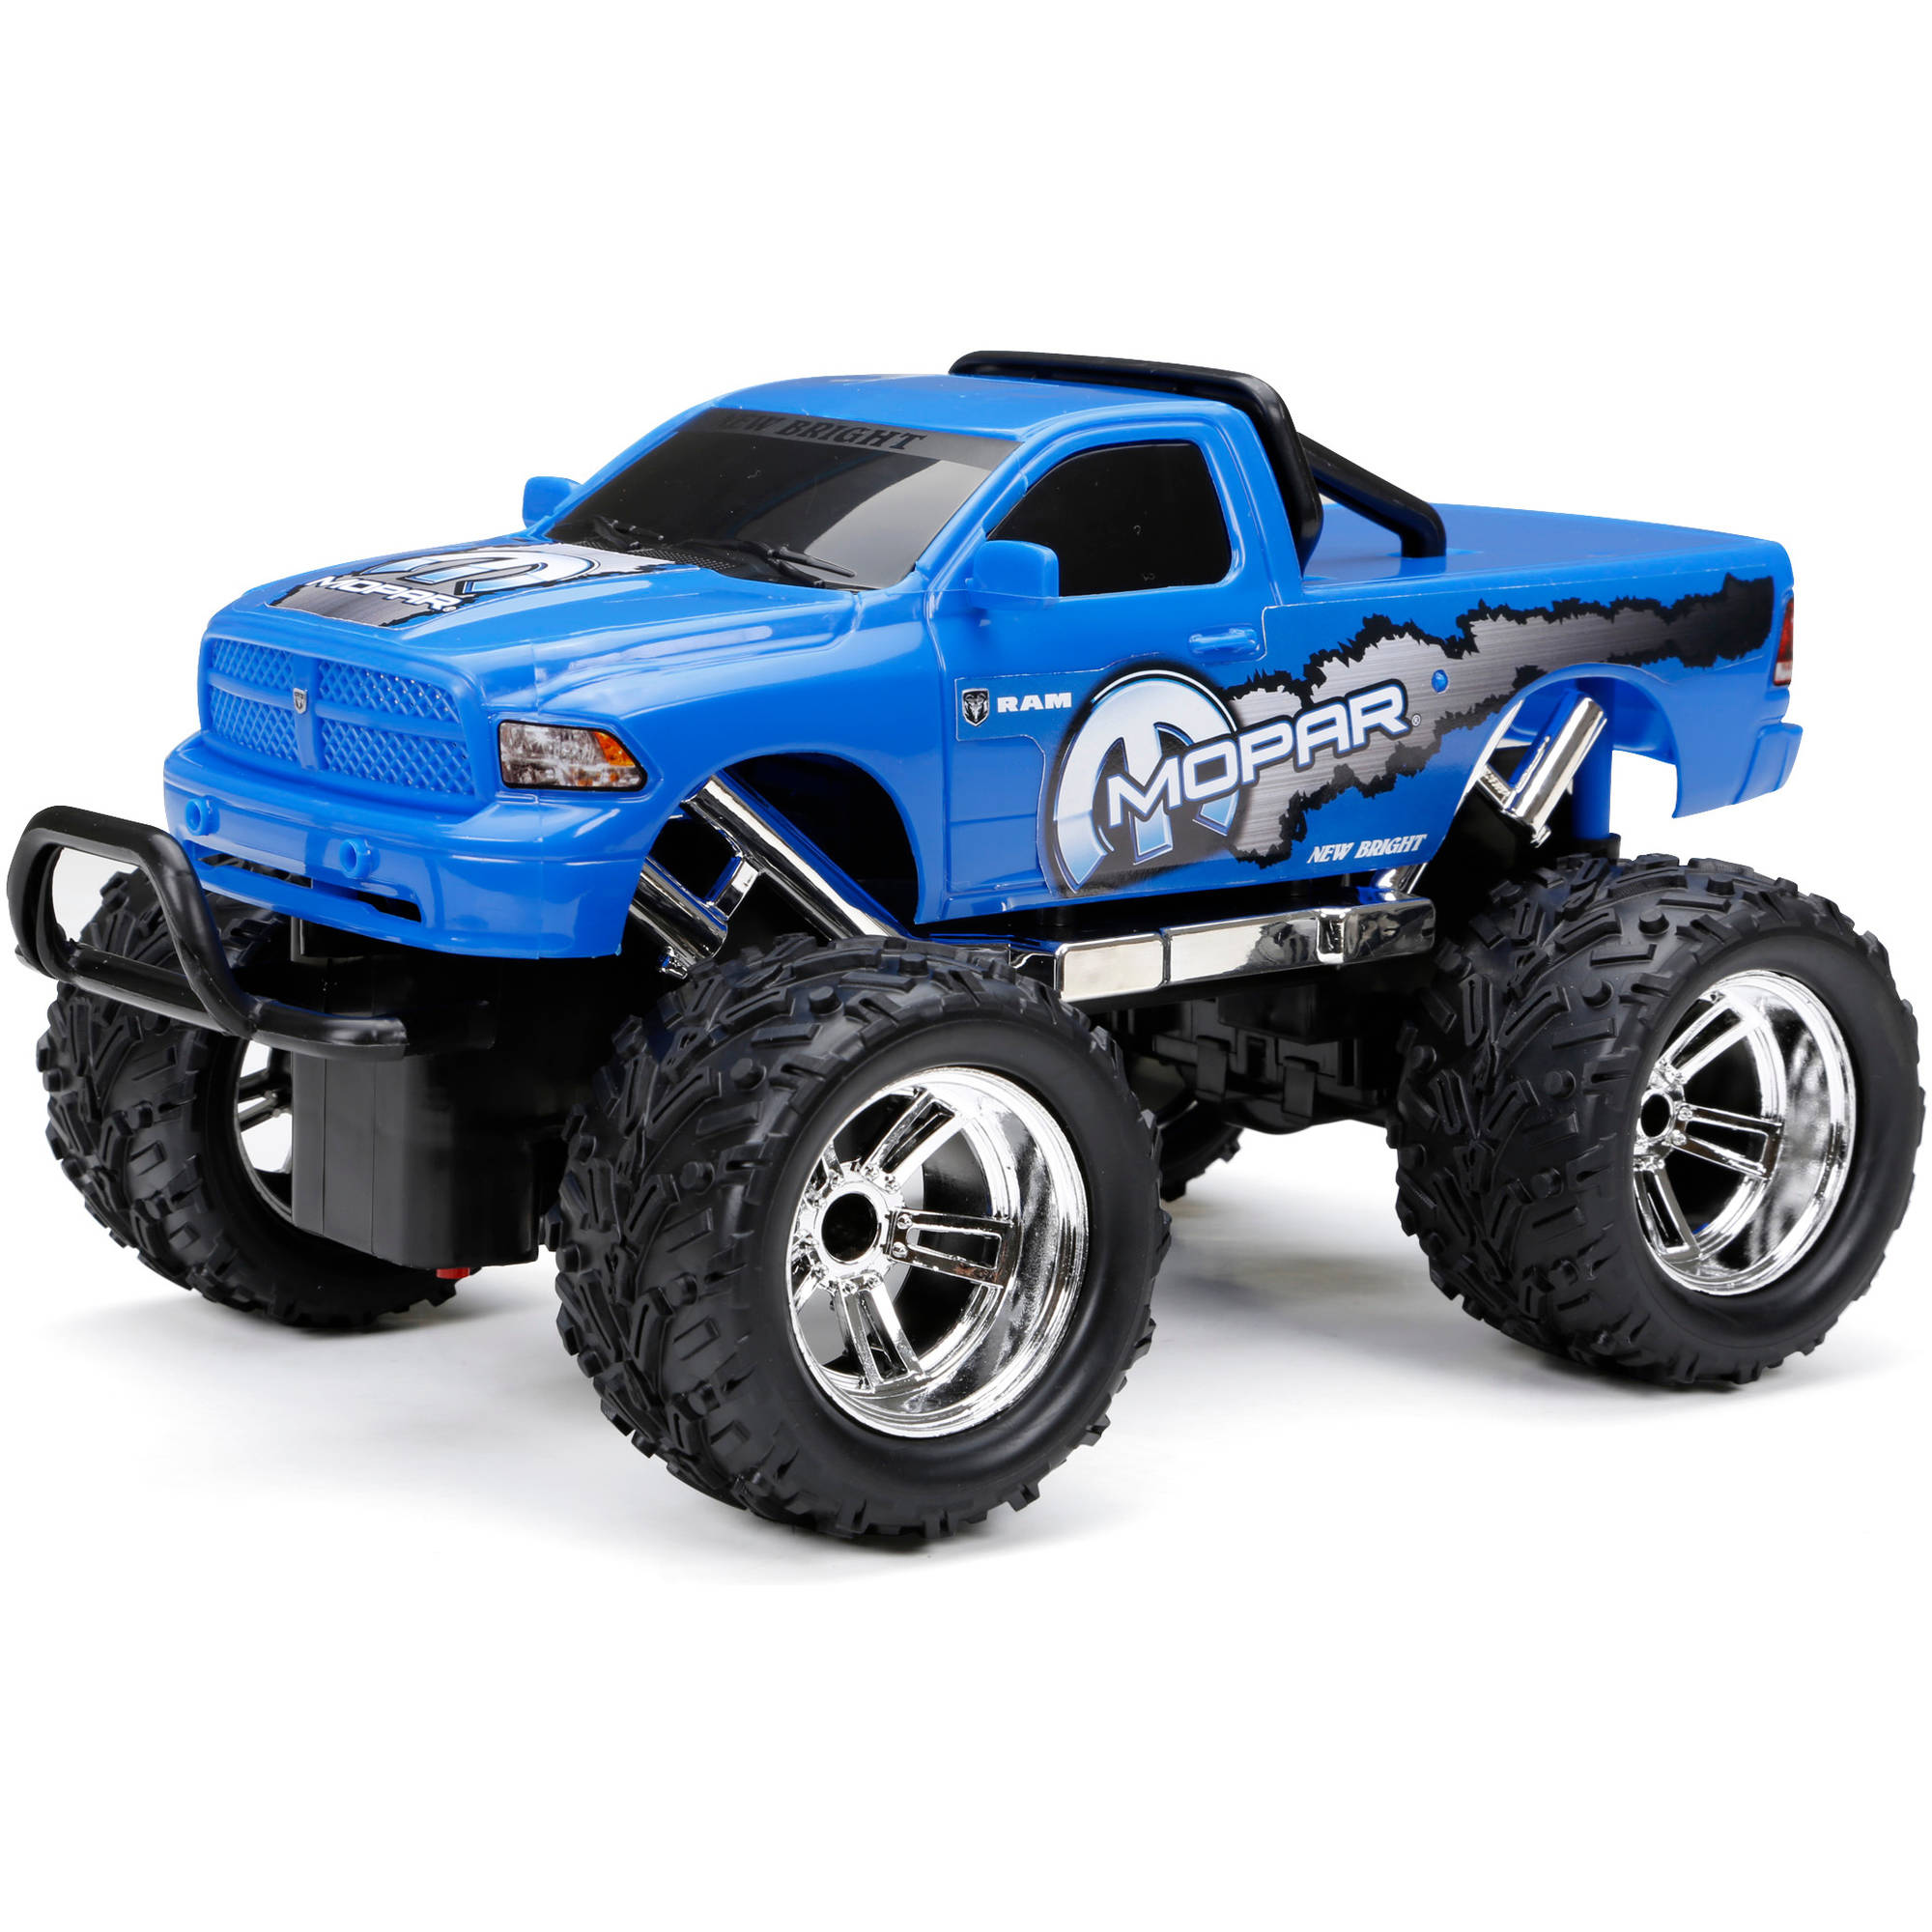 New Bright 1:16 Radio-Control Full-Function Ram Truck, Red